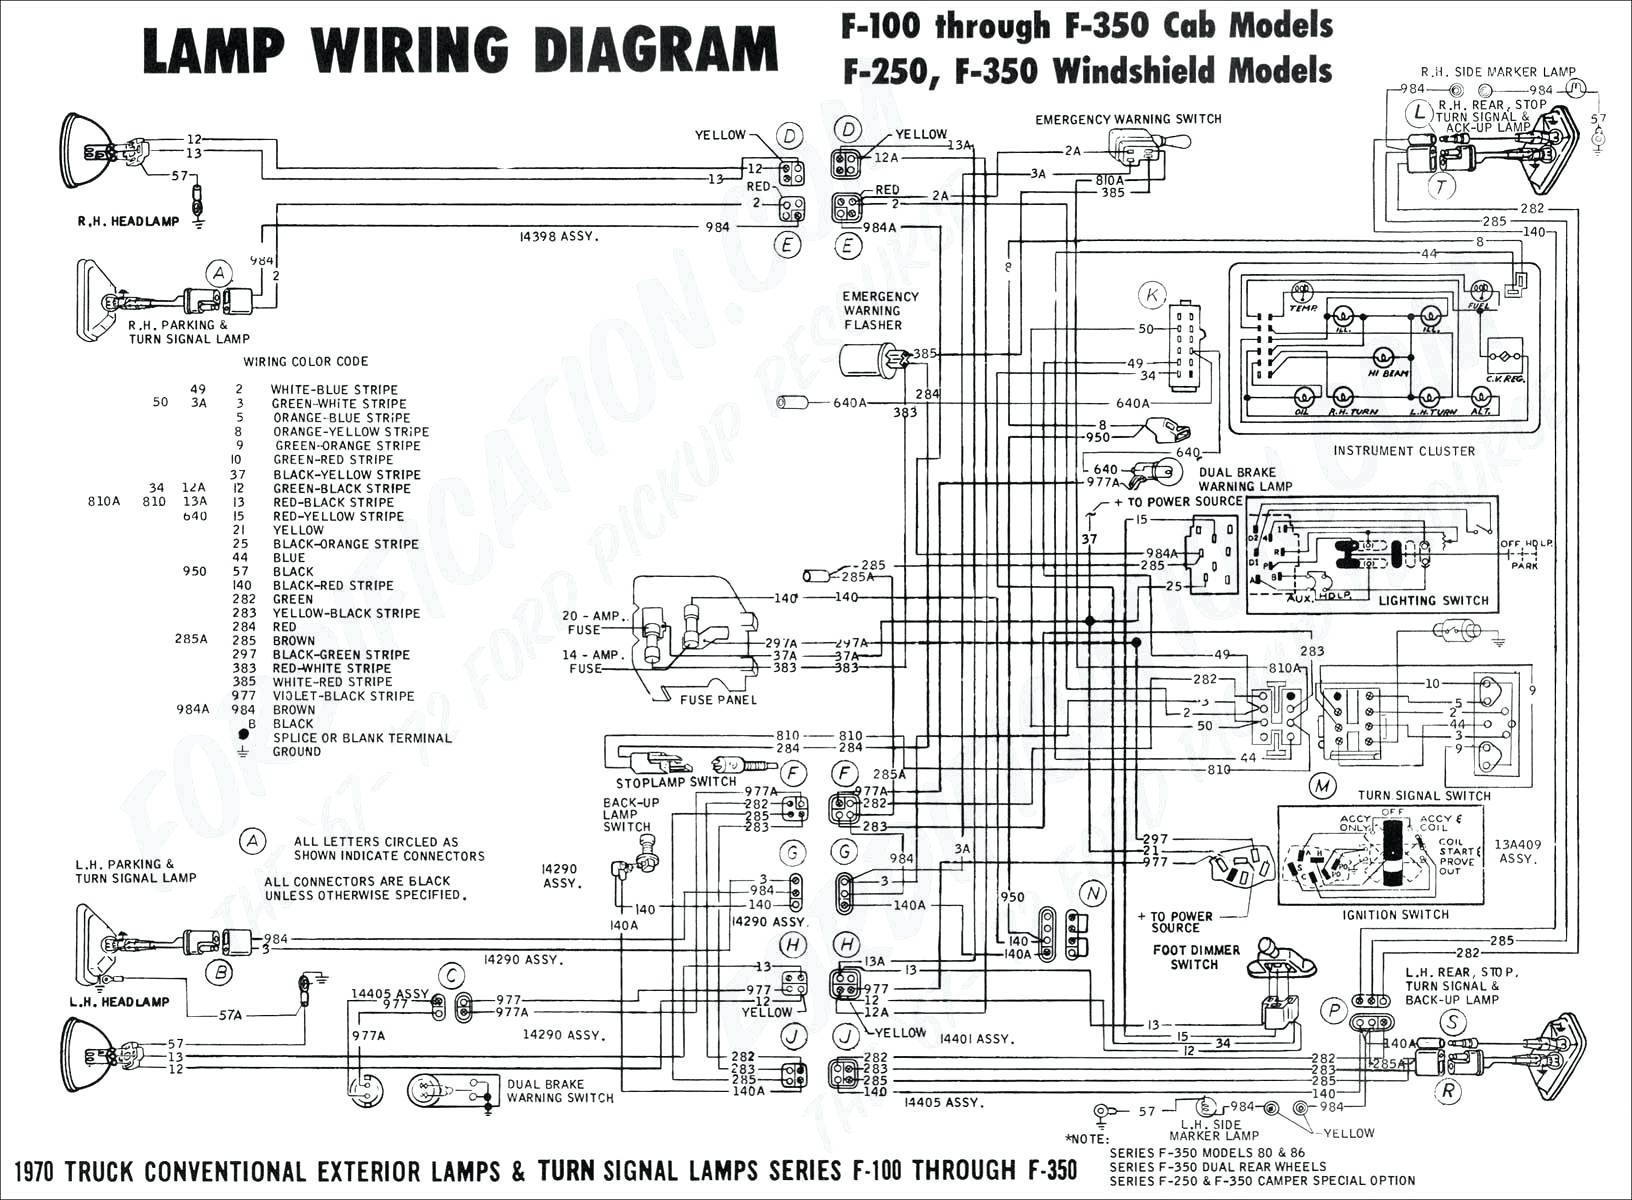 Simple Turn Signal Wiring Diagram Wiring Diagram Ididit Steering Column Simple Wiring Diagram Datasource Of Simple Turn Signal Wiring Diagram Tech Tips